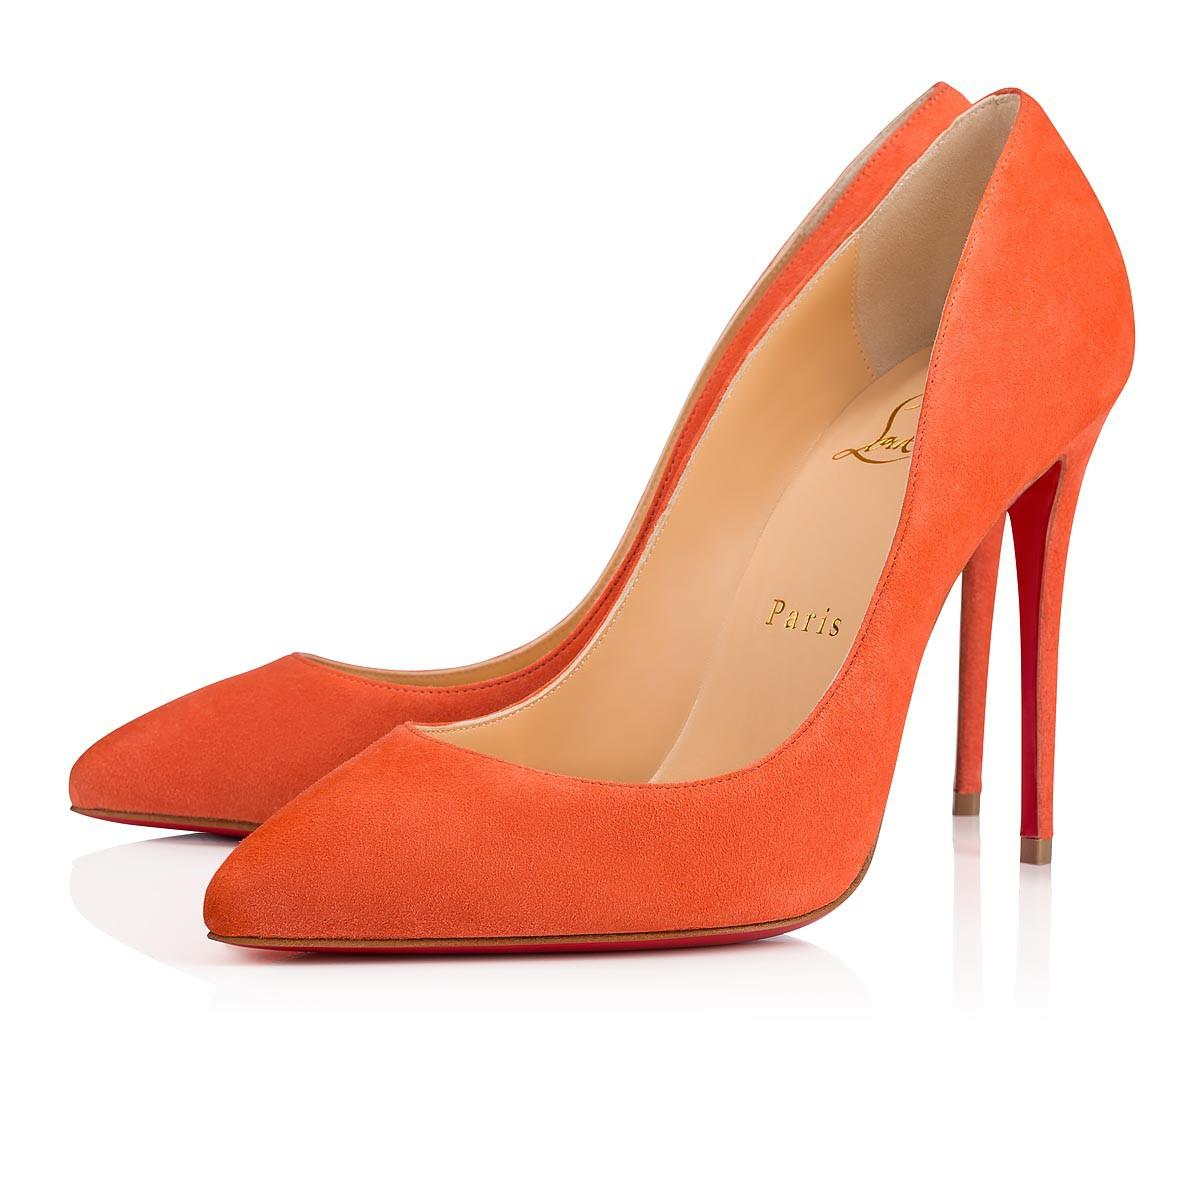 306e9a27a4ec ... of Christian Louboutin s Pigalle Follies pumps are the cabaret spirit  incarnate with a sensual and flowing cut above a 100mm heel. The peachy-pink  suede ...